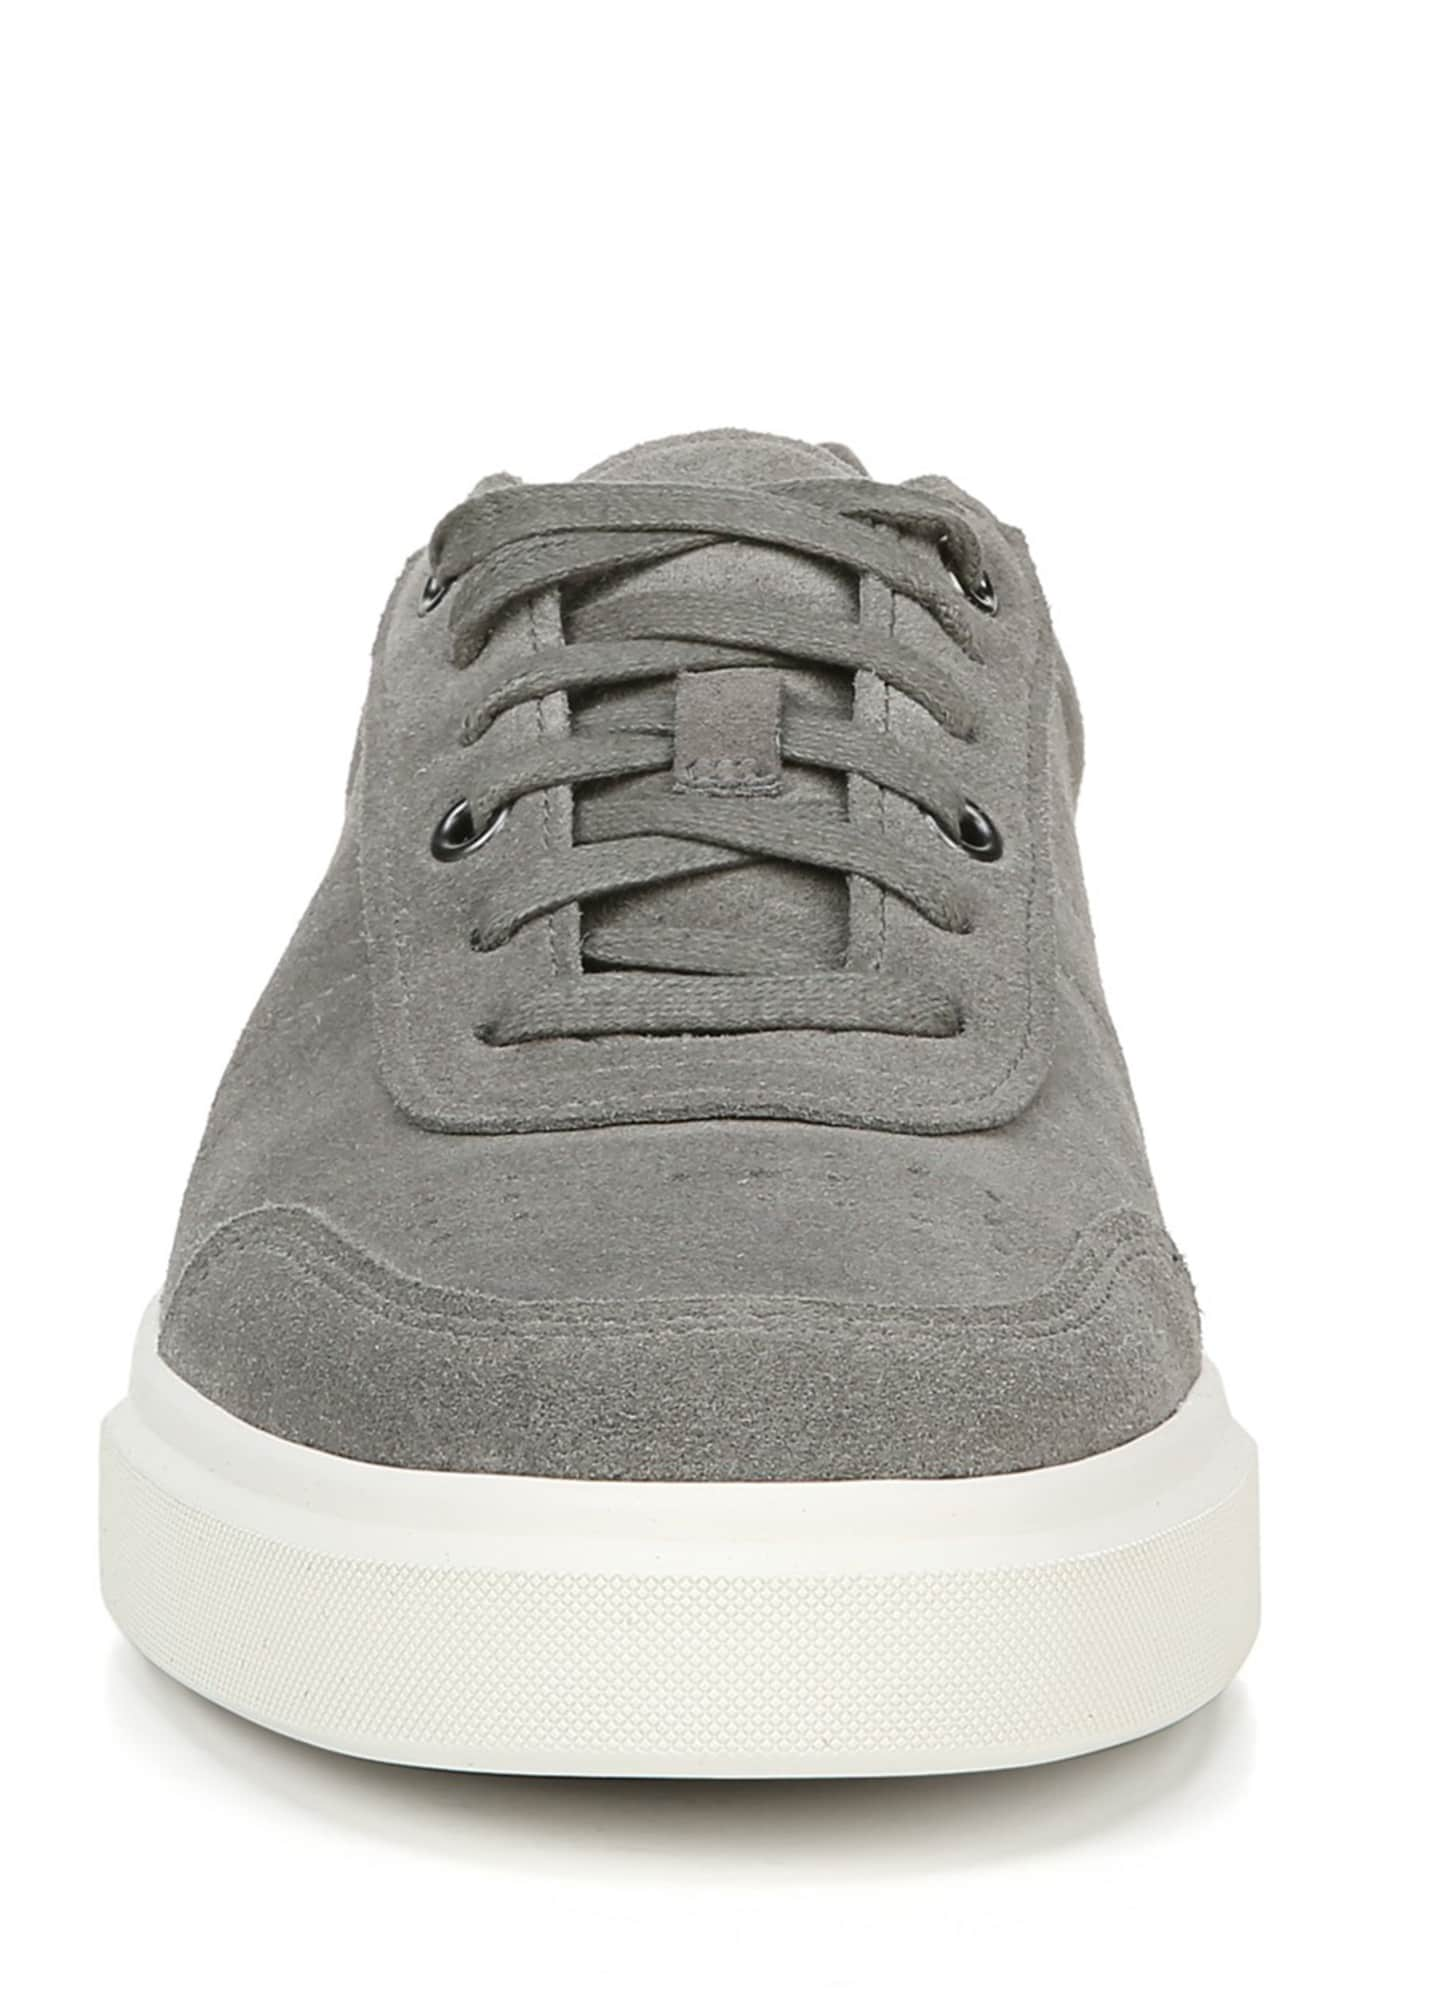 Image 5 of 5: Men's Barnett Perforated Suede Low-Top Sneakers